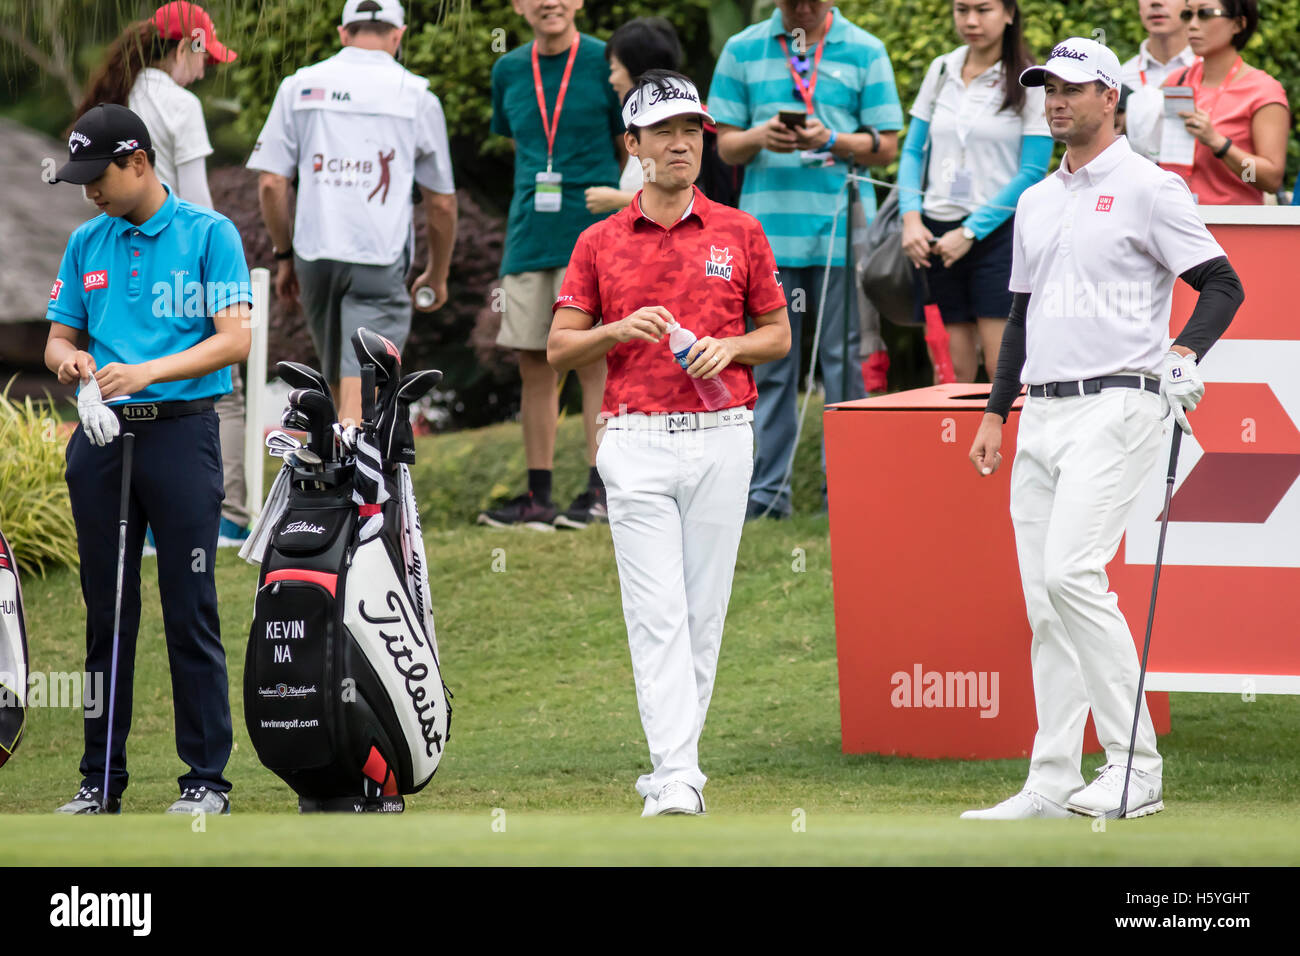 Kuala Lumpur, Malaysia. 22nd Oct, 2016. Round 3 see Kevin Na and Adam Scott joking before getting ready to tee off - Stock Image